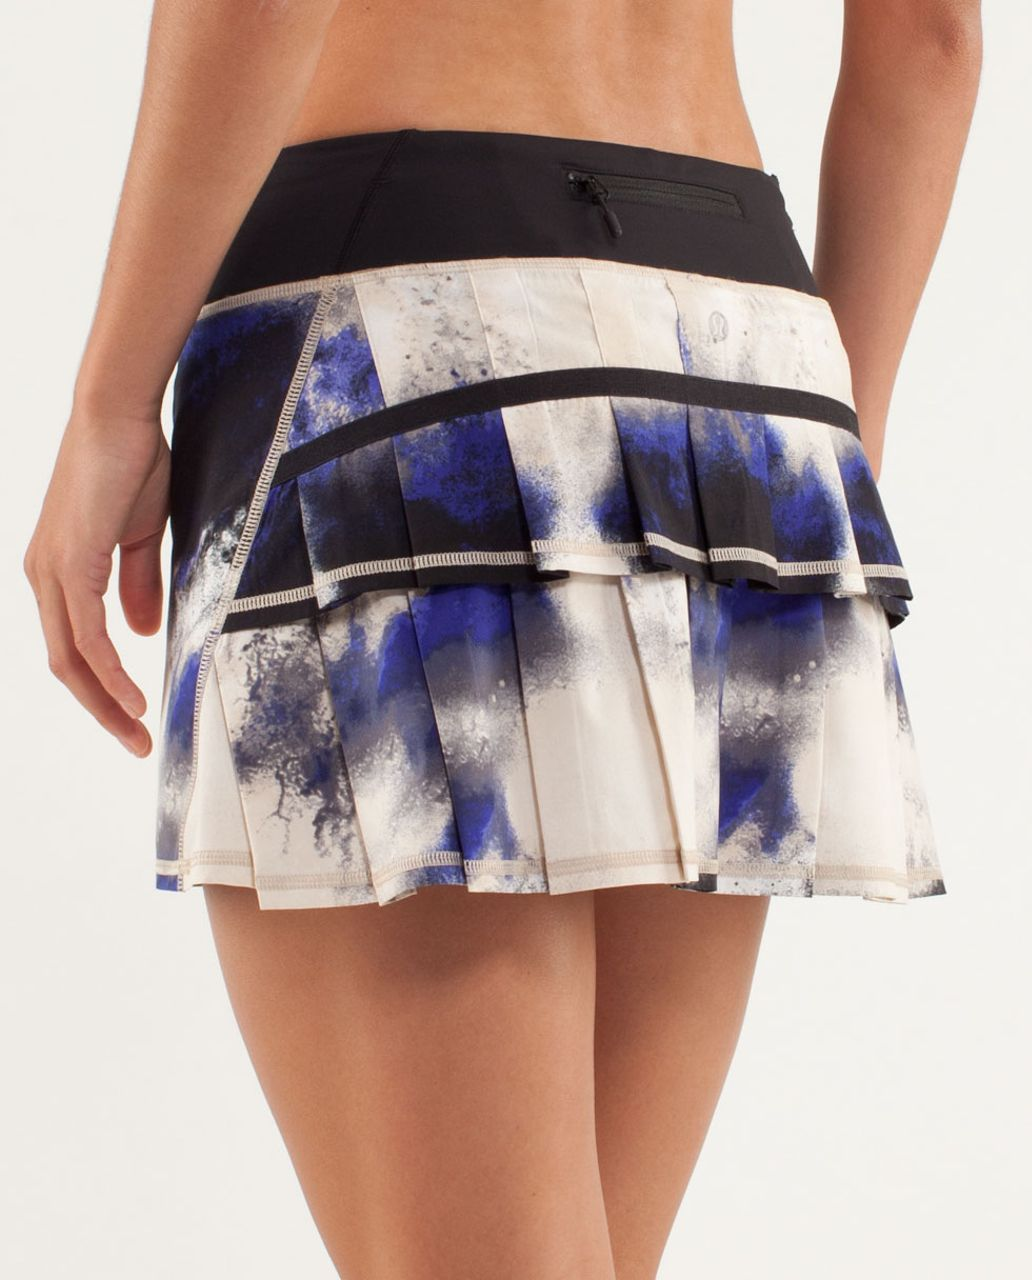 Lululemon Run:  Pace Setter Skirt (Regular) - Milky Way Multi Print / Black / Pigment Blue